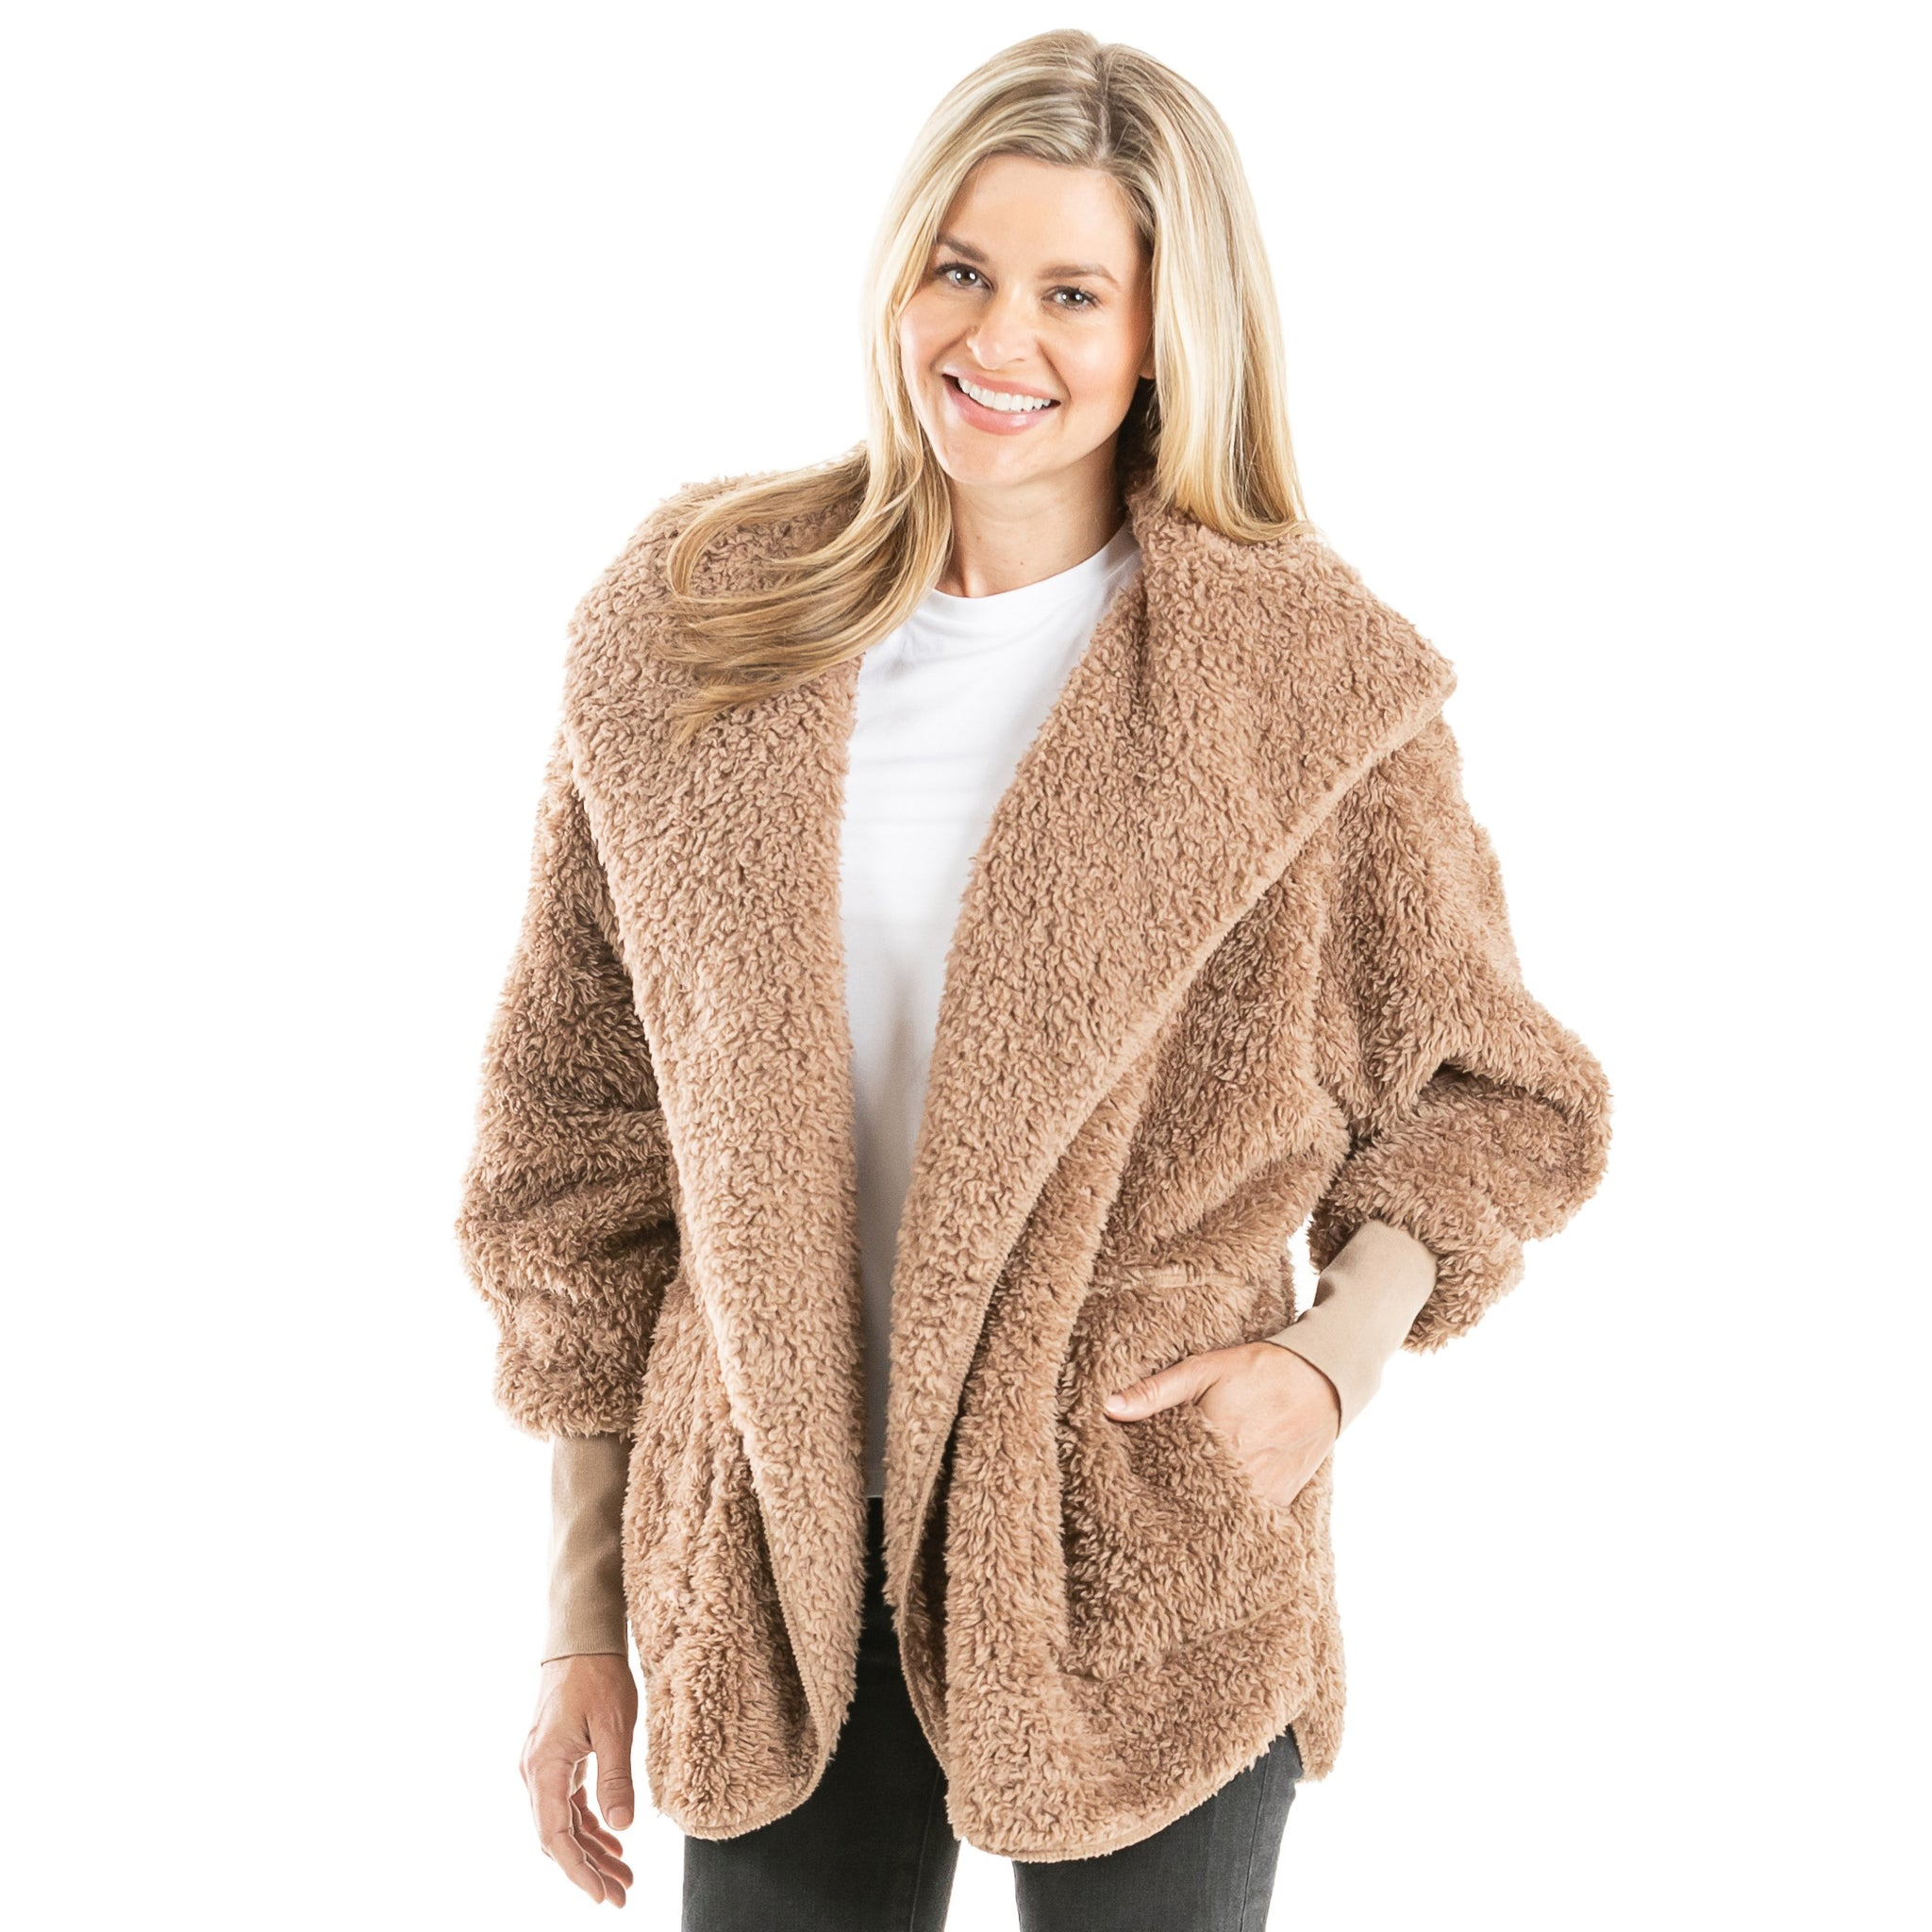 Sherpa Wholesale Body Wrap/Cardigan for Women Hoodie (7 colors)